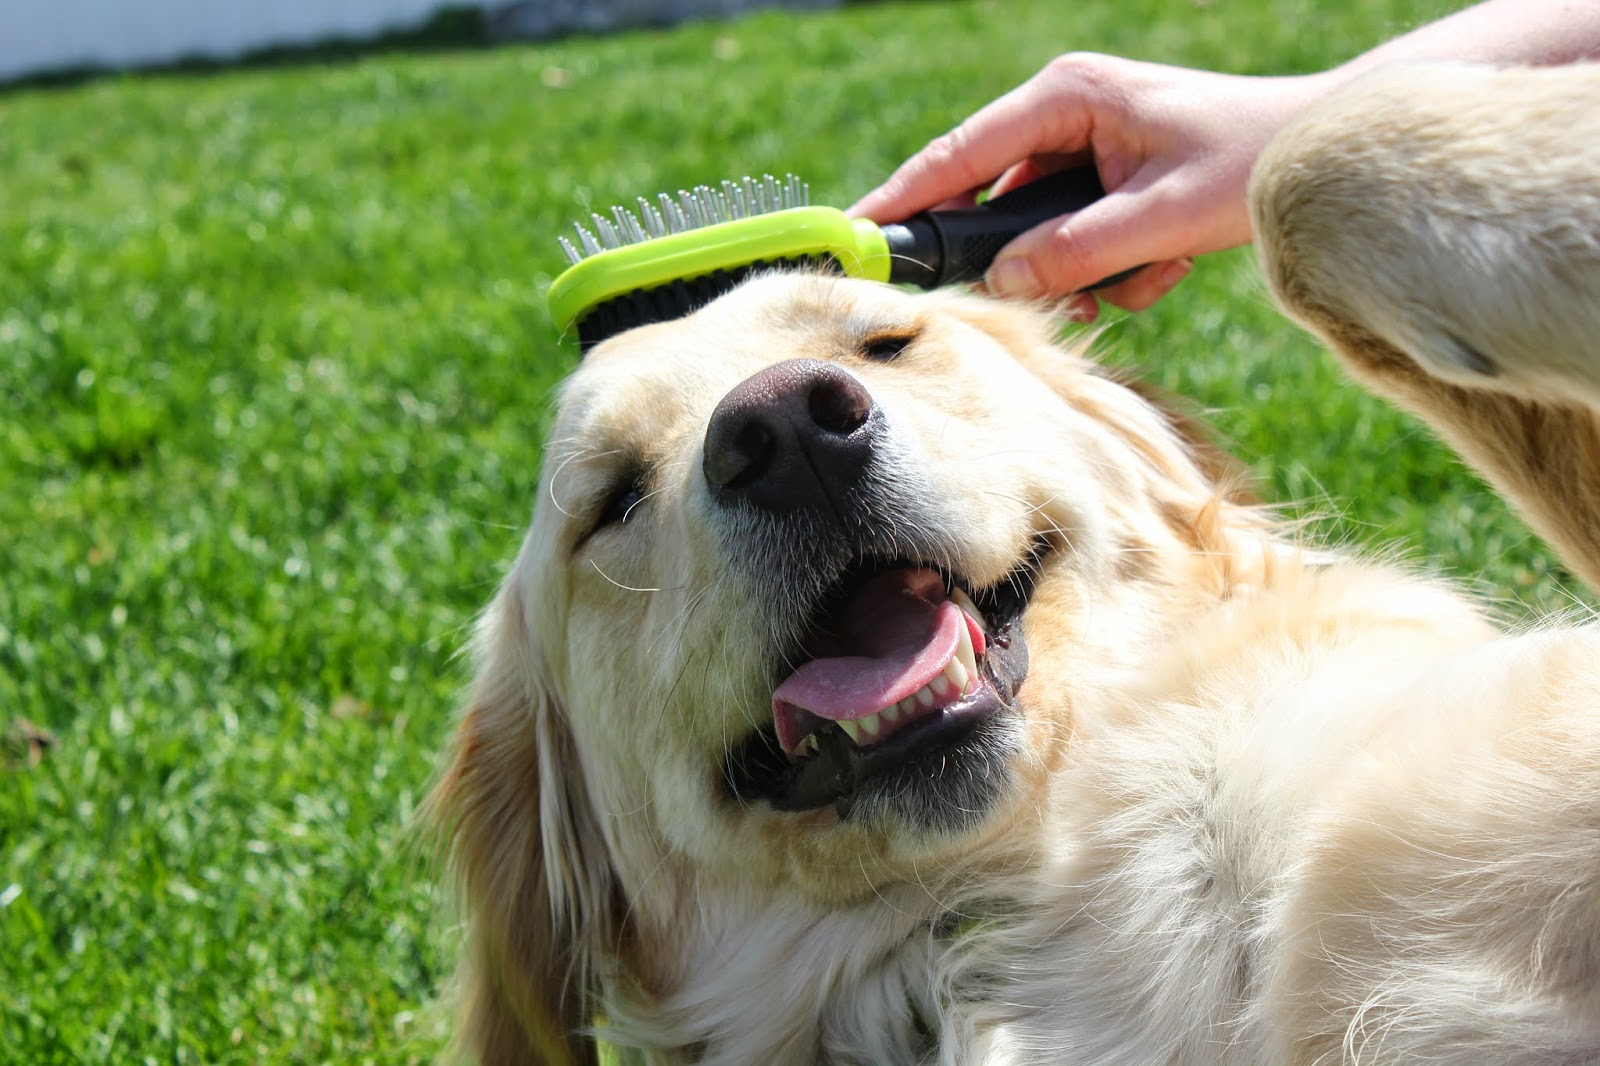 keeping dogs well groomed with Furminator dual brush